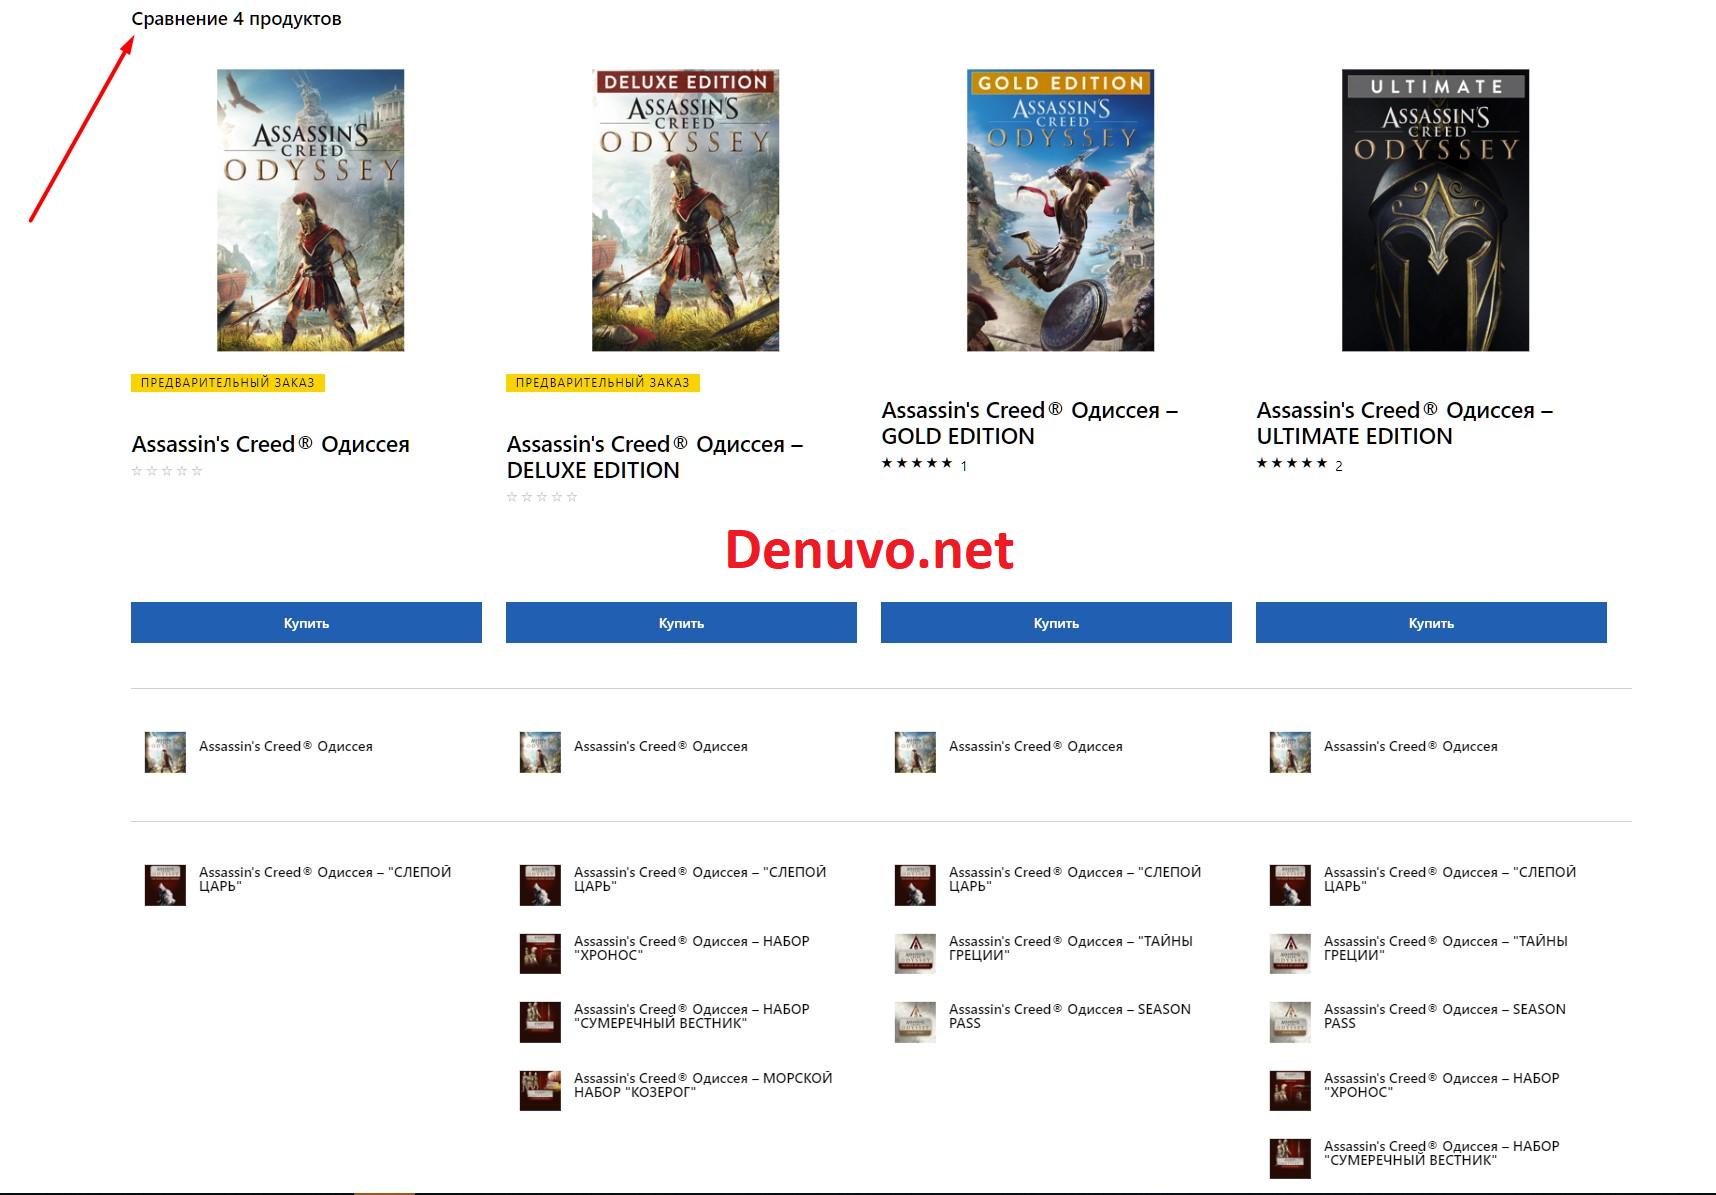 Assassin´s Creed Odyssey ULTIMATE (V1.14) ALL DLC